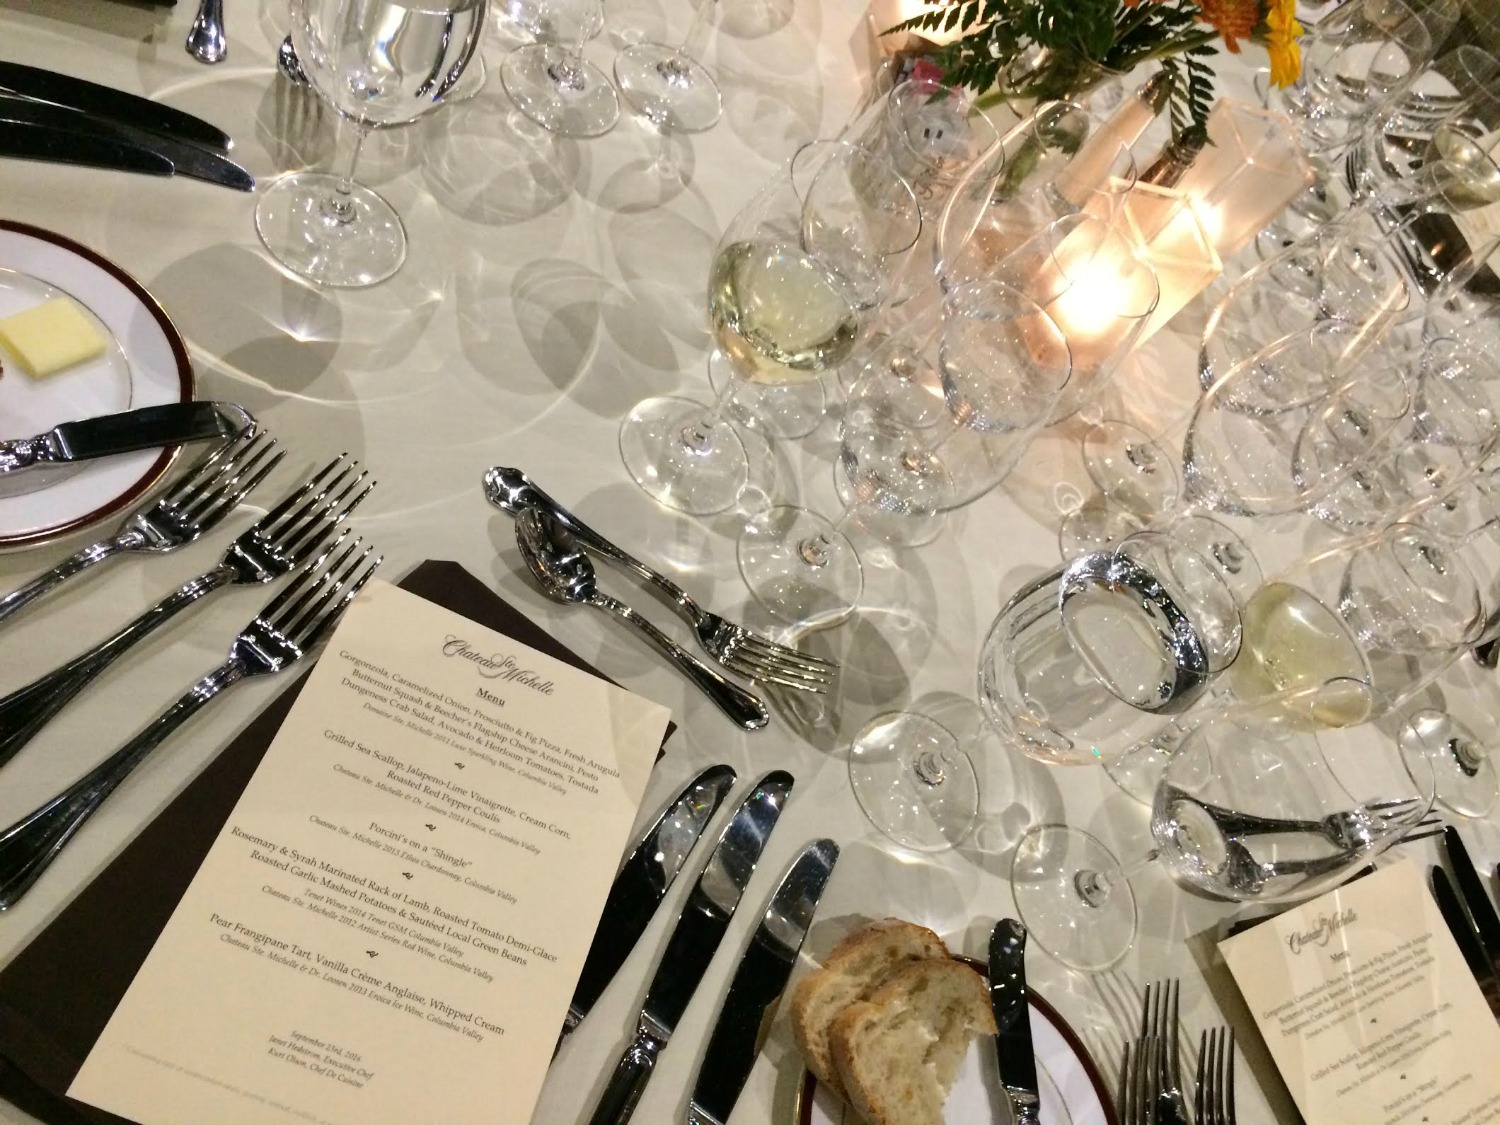 The wine dinner at Chateau Ste. Michelle. Photo by Cara Strickland.